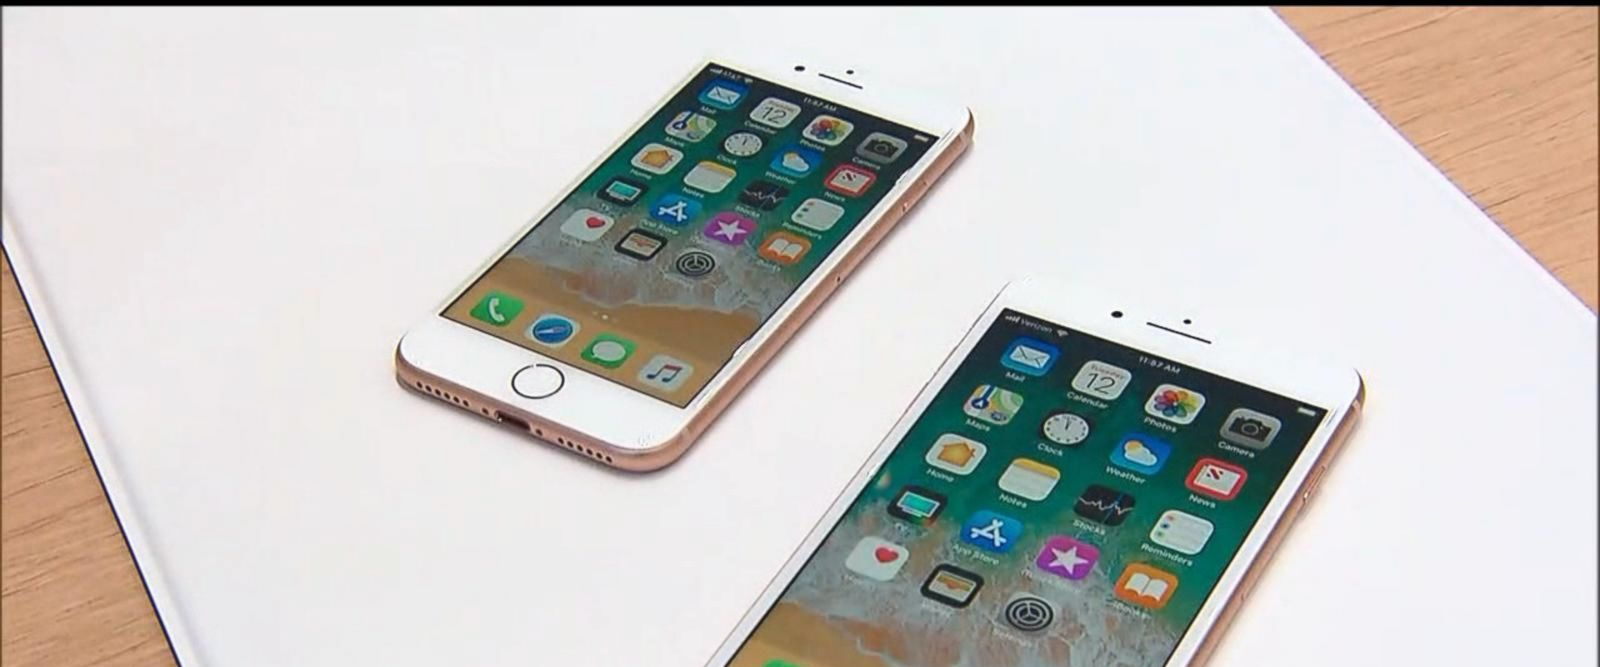 VIDEO: Apple to unveil 3 new iPhones